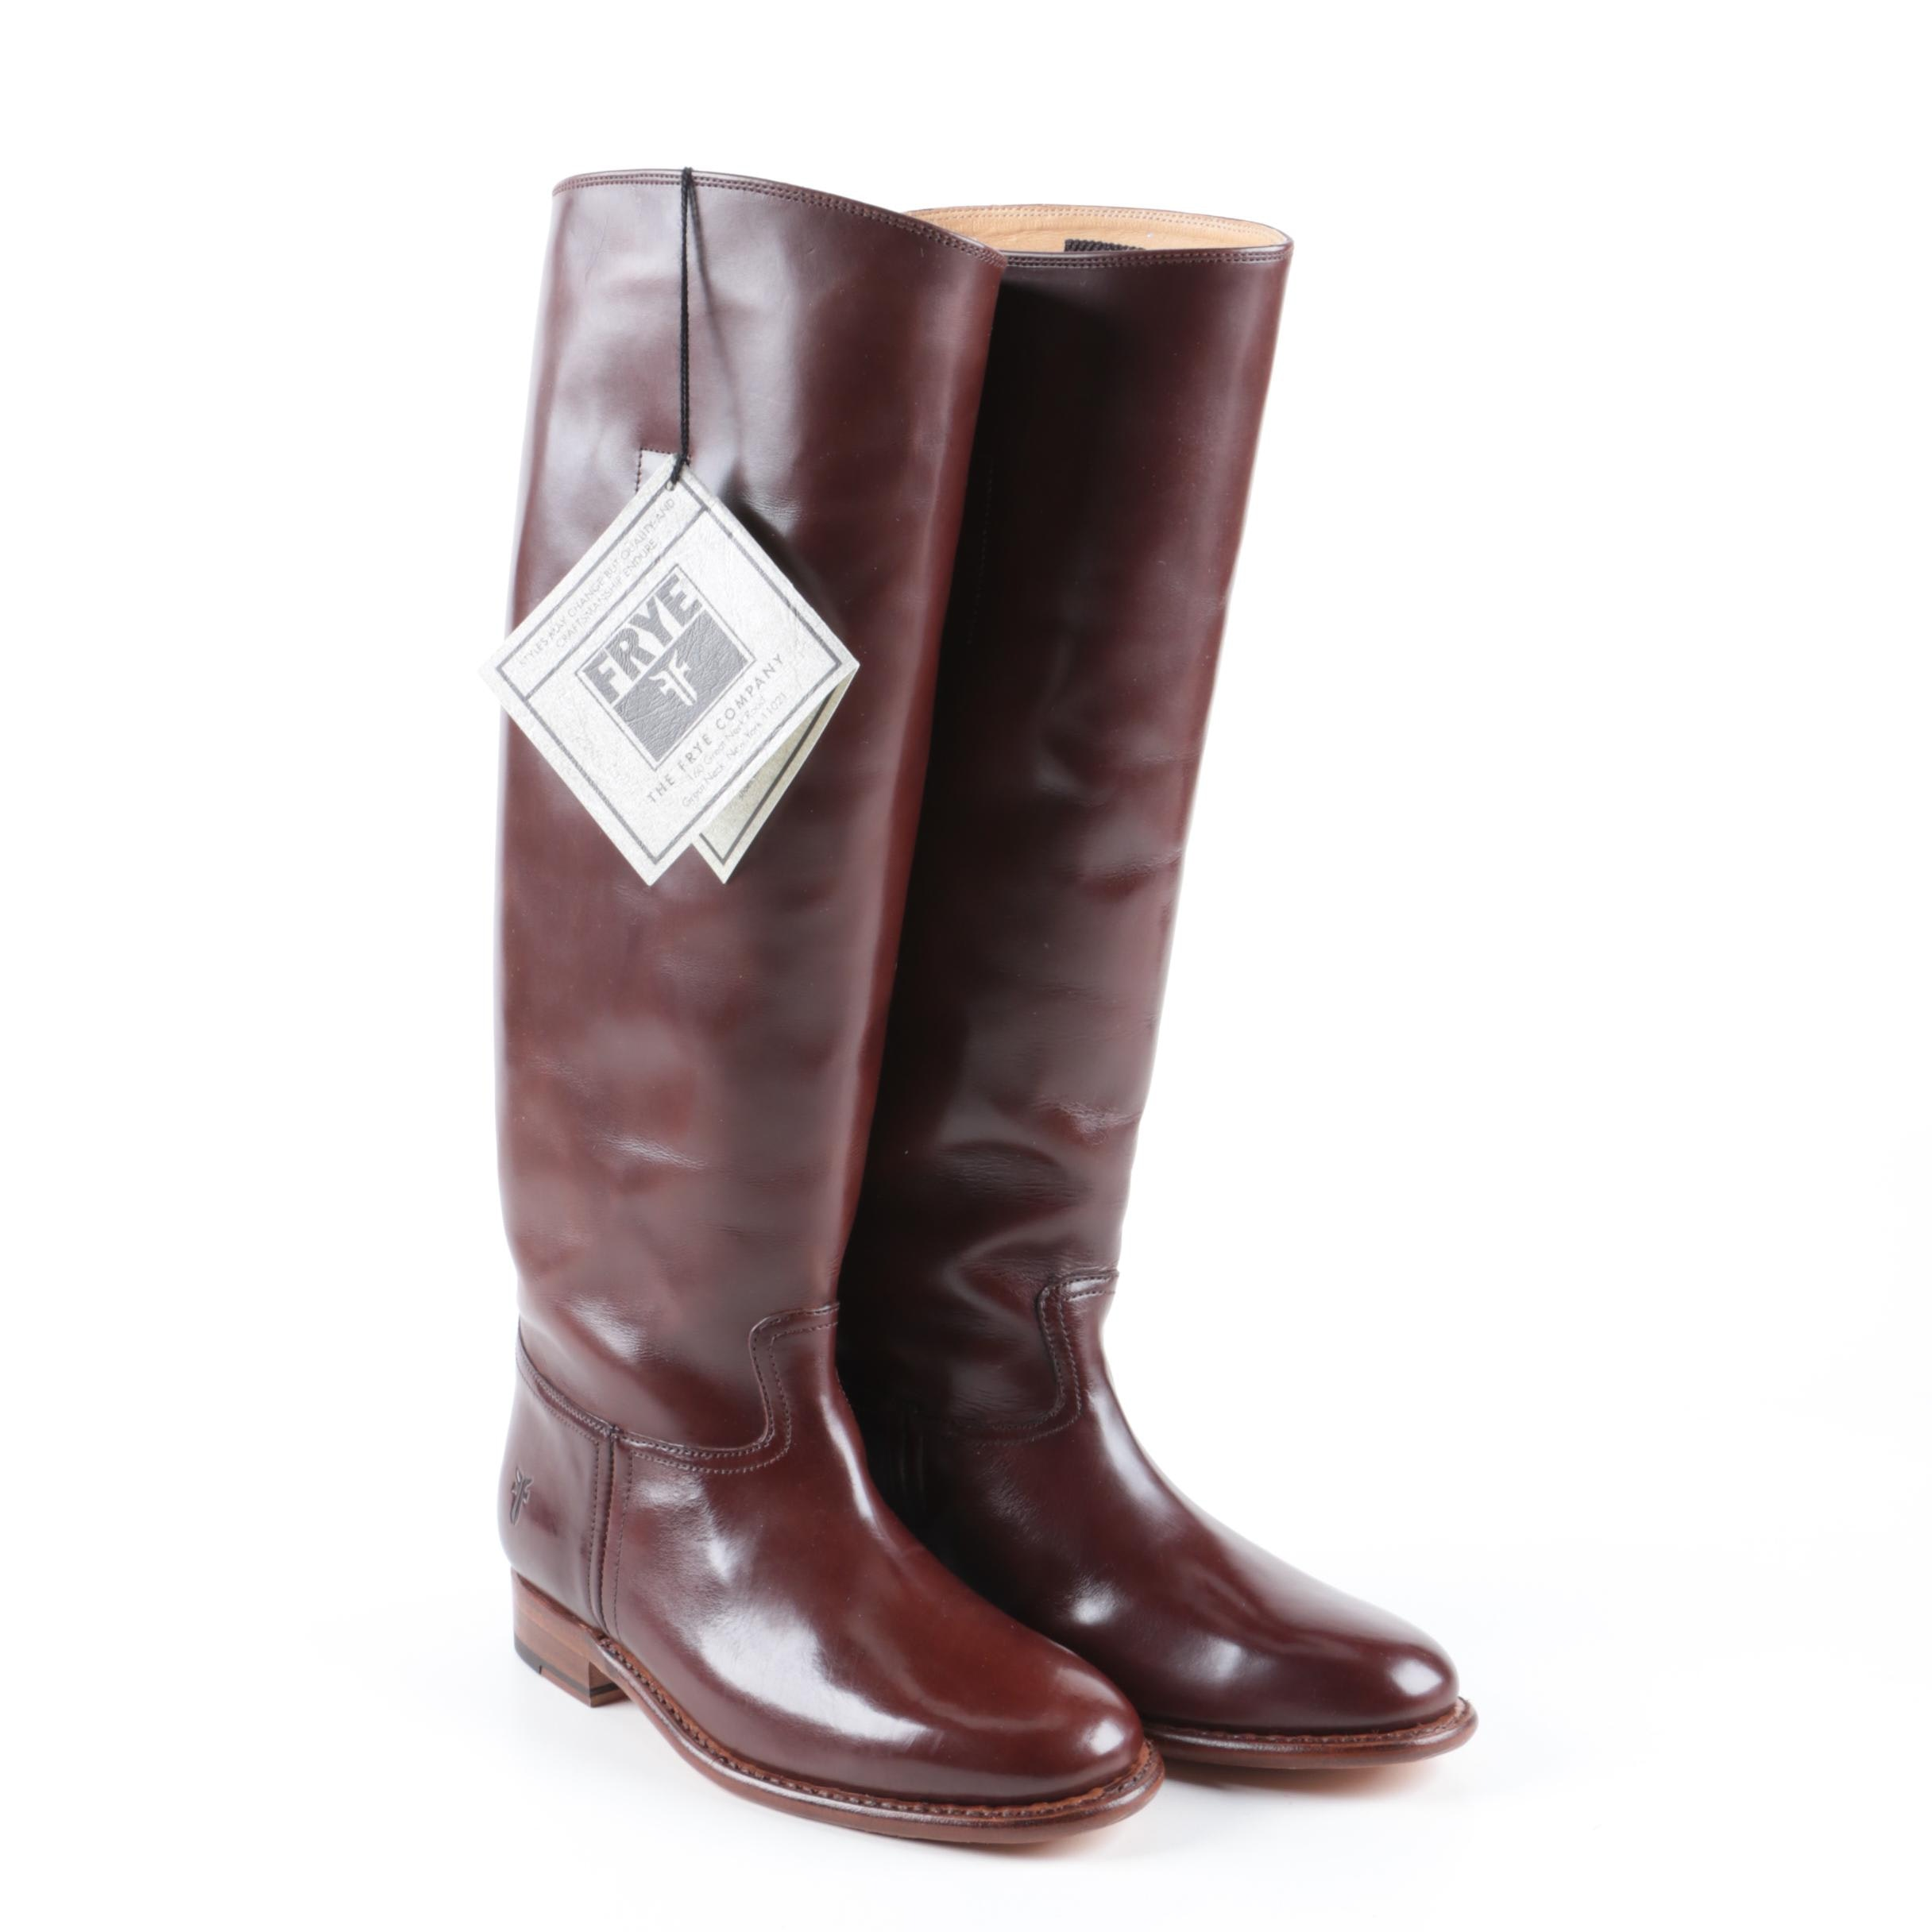 Women's Frye Abigail Leather Riding Boots